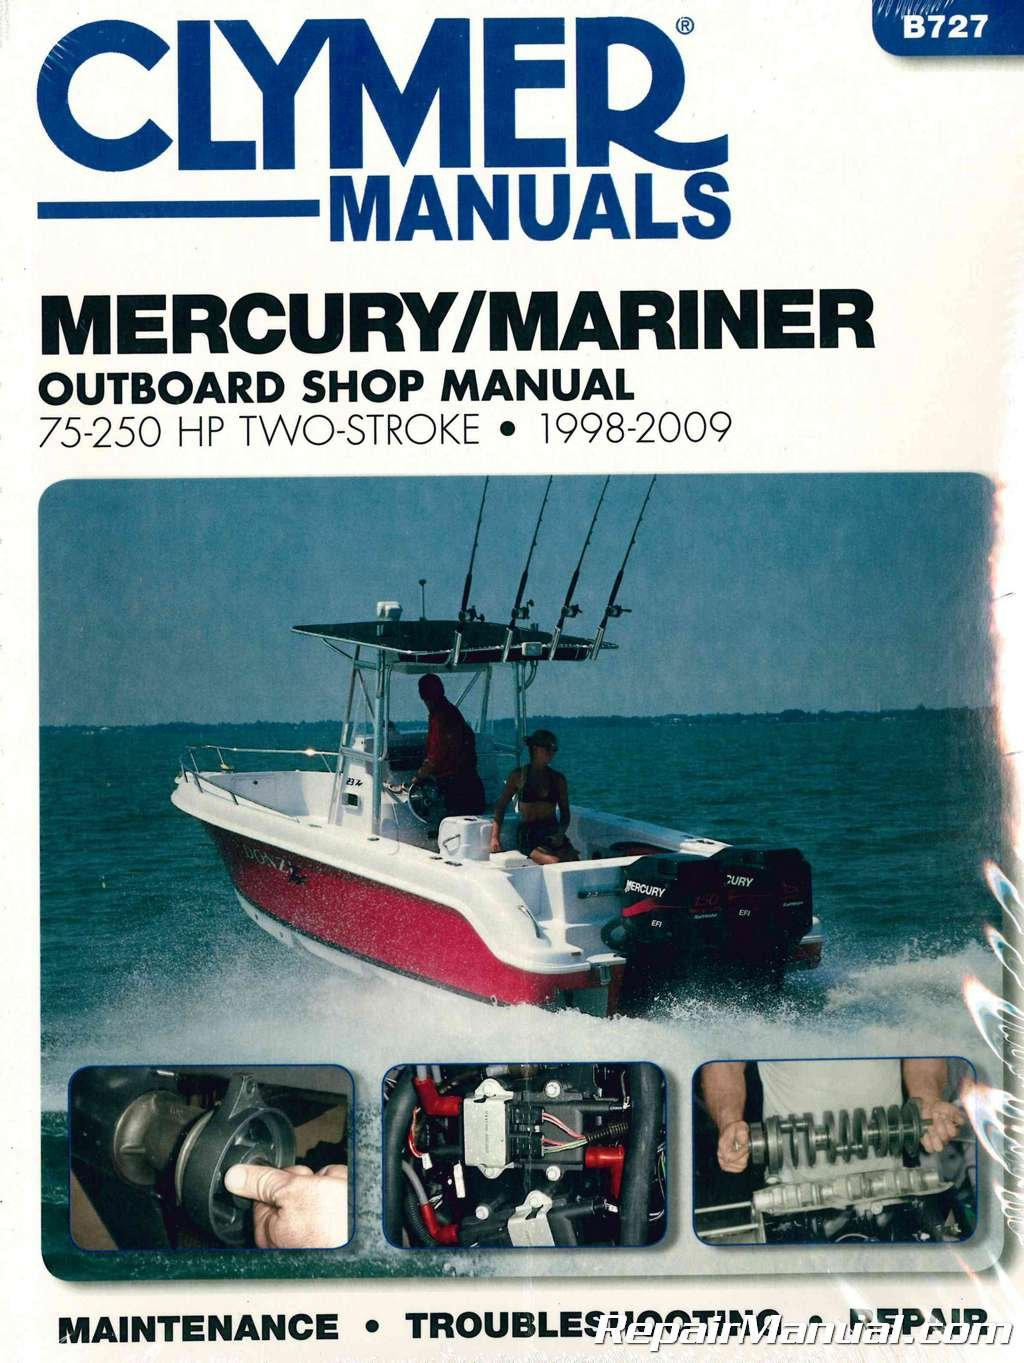 B727 1998-2009 Mercury-Mariner 75-250 hp Two Stroke Outboard Boat Engine Repair  Manual by Clymer: Manufacturer: Amazon.com: Books